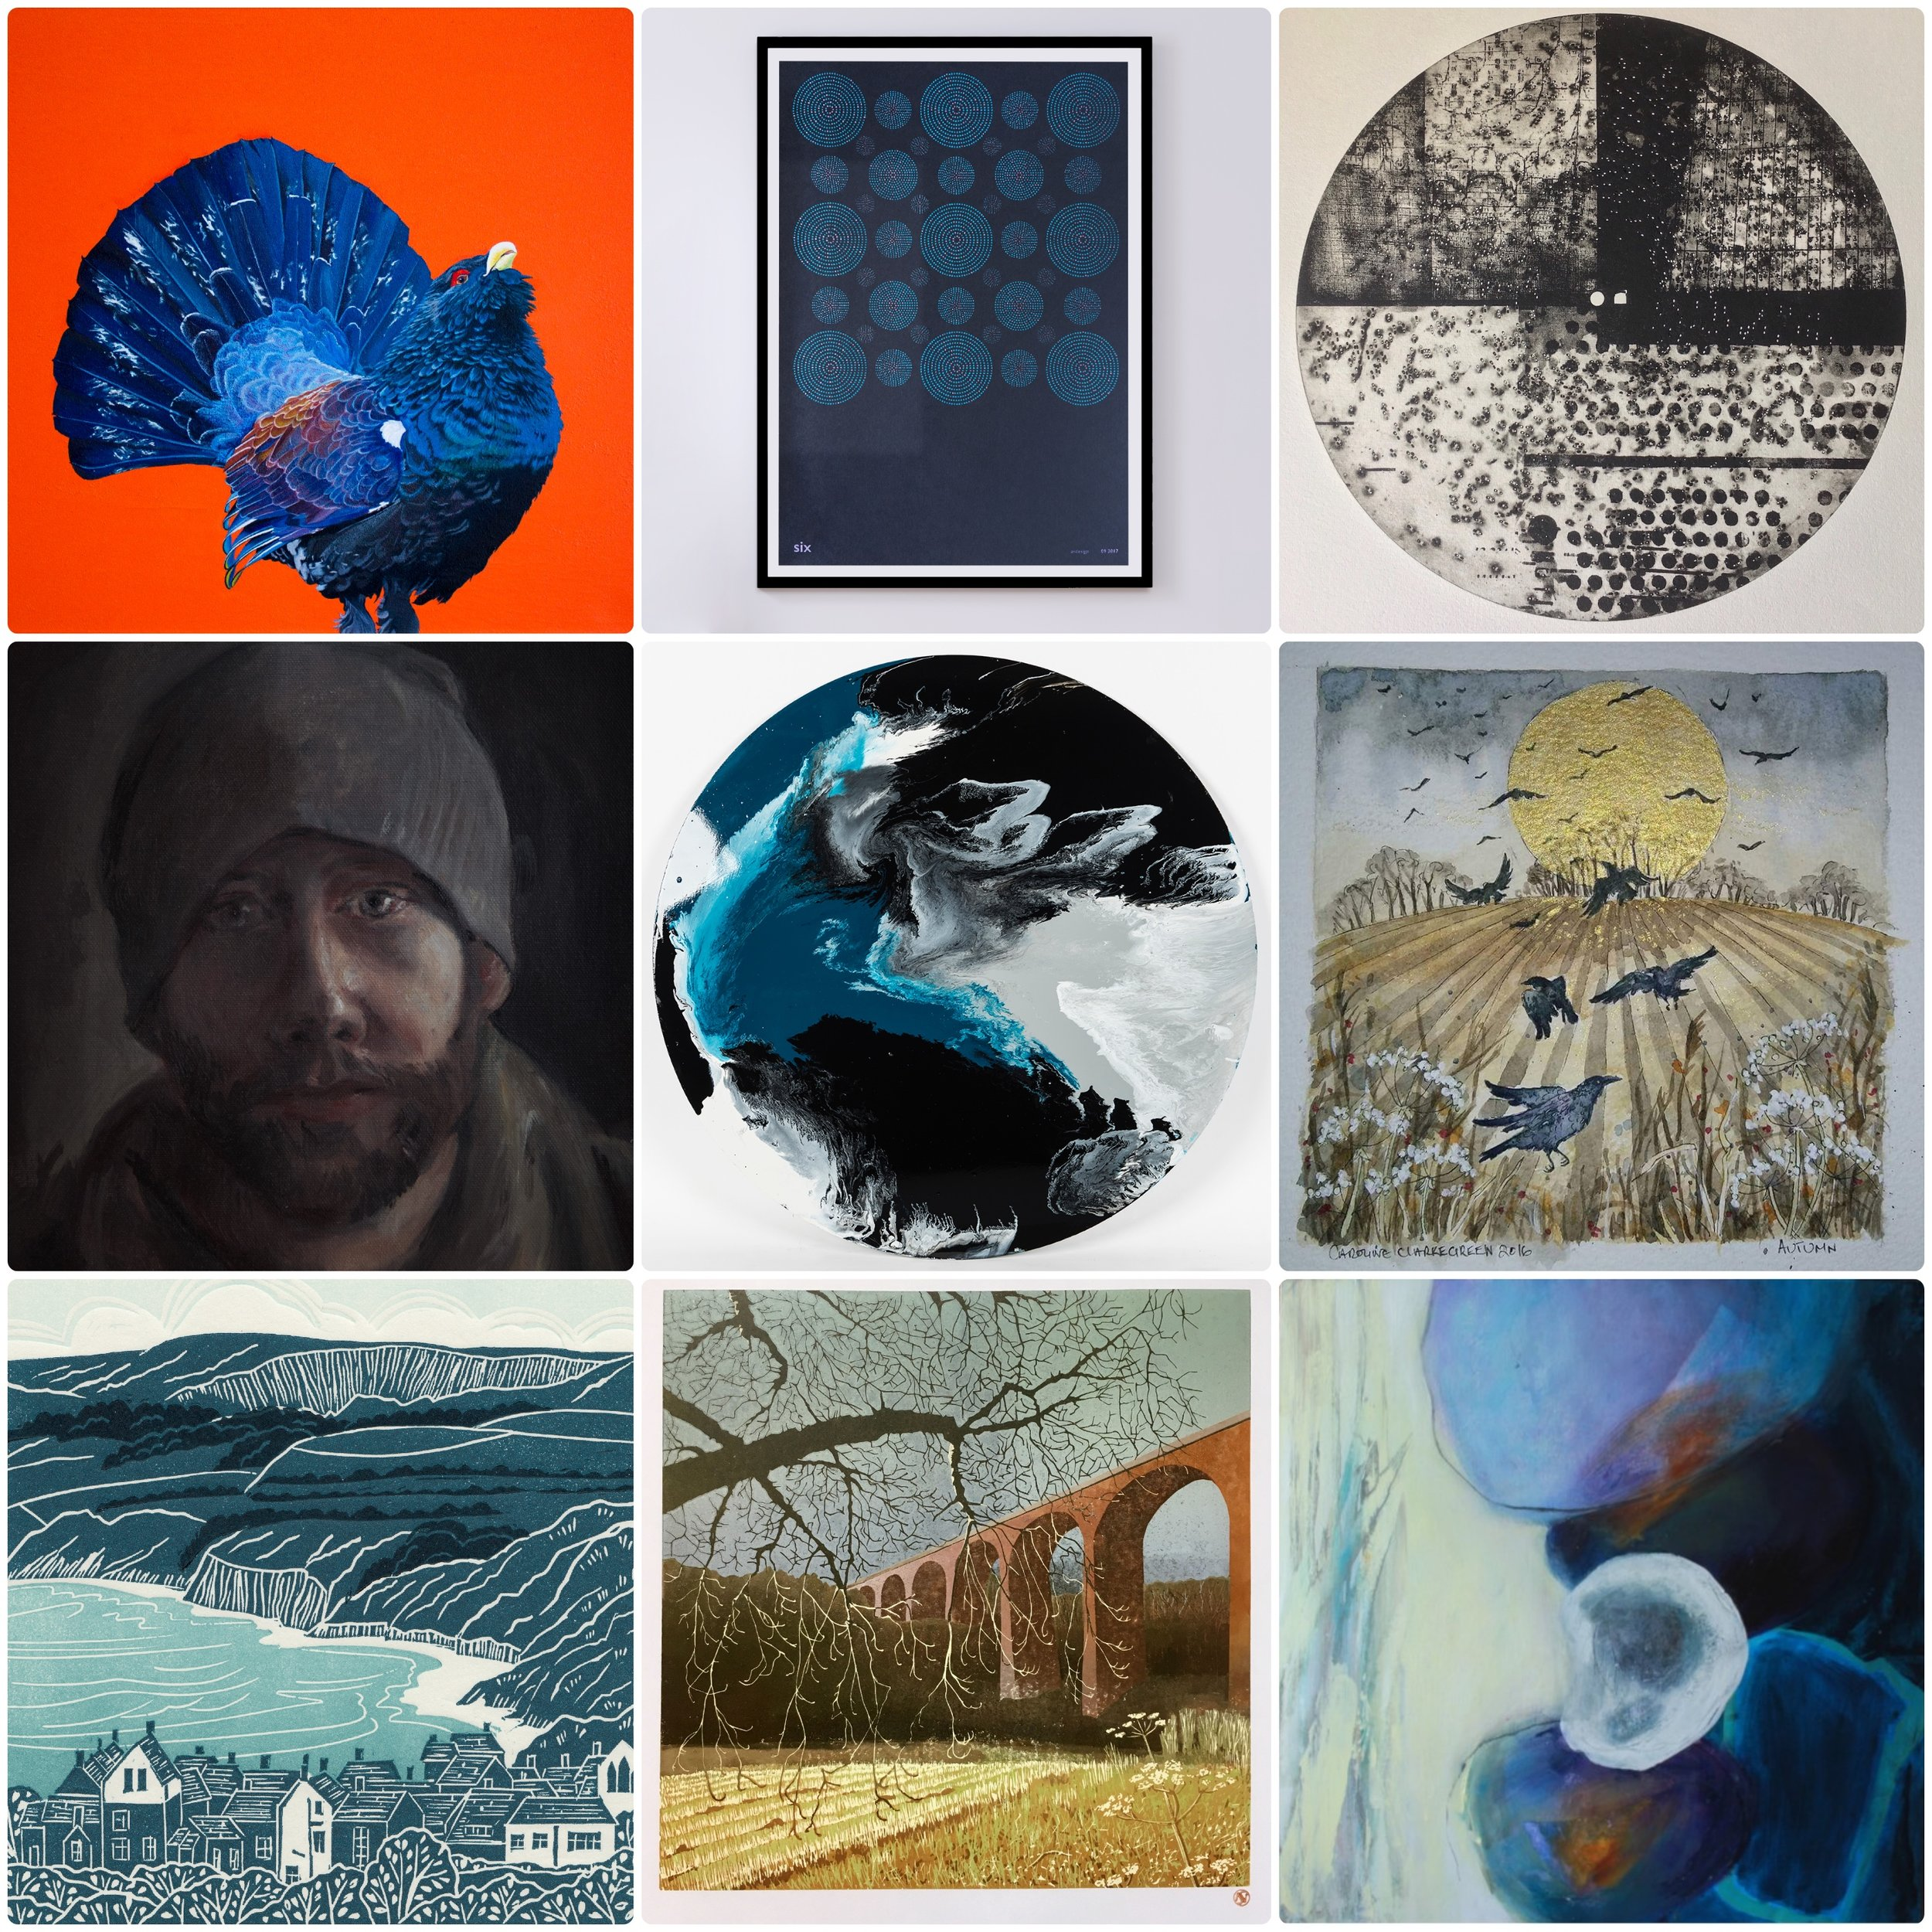 EMERGING ARTISTS EXHIBITION - 1ST SEPTEMBER TO 3RD NOVEMBER 201820+ TALENTED EMERGING ARTISTS ACROSS SEVERAL MEDIUMS